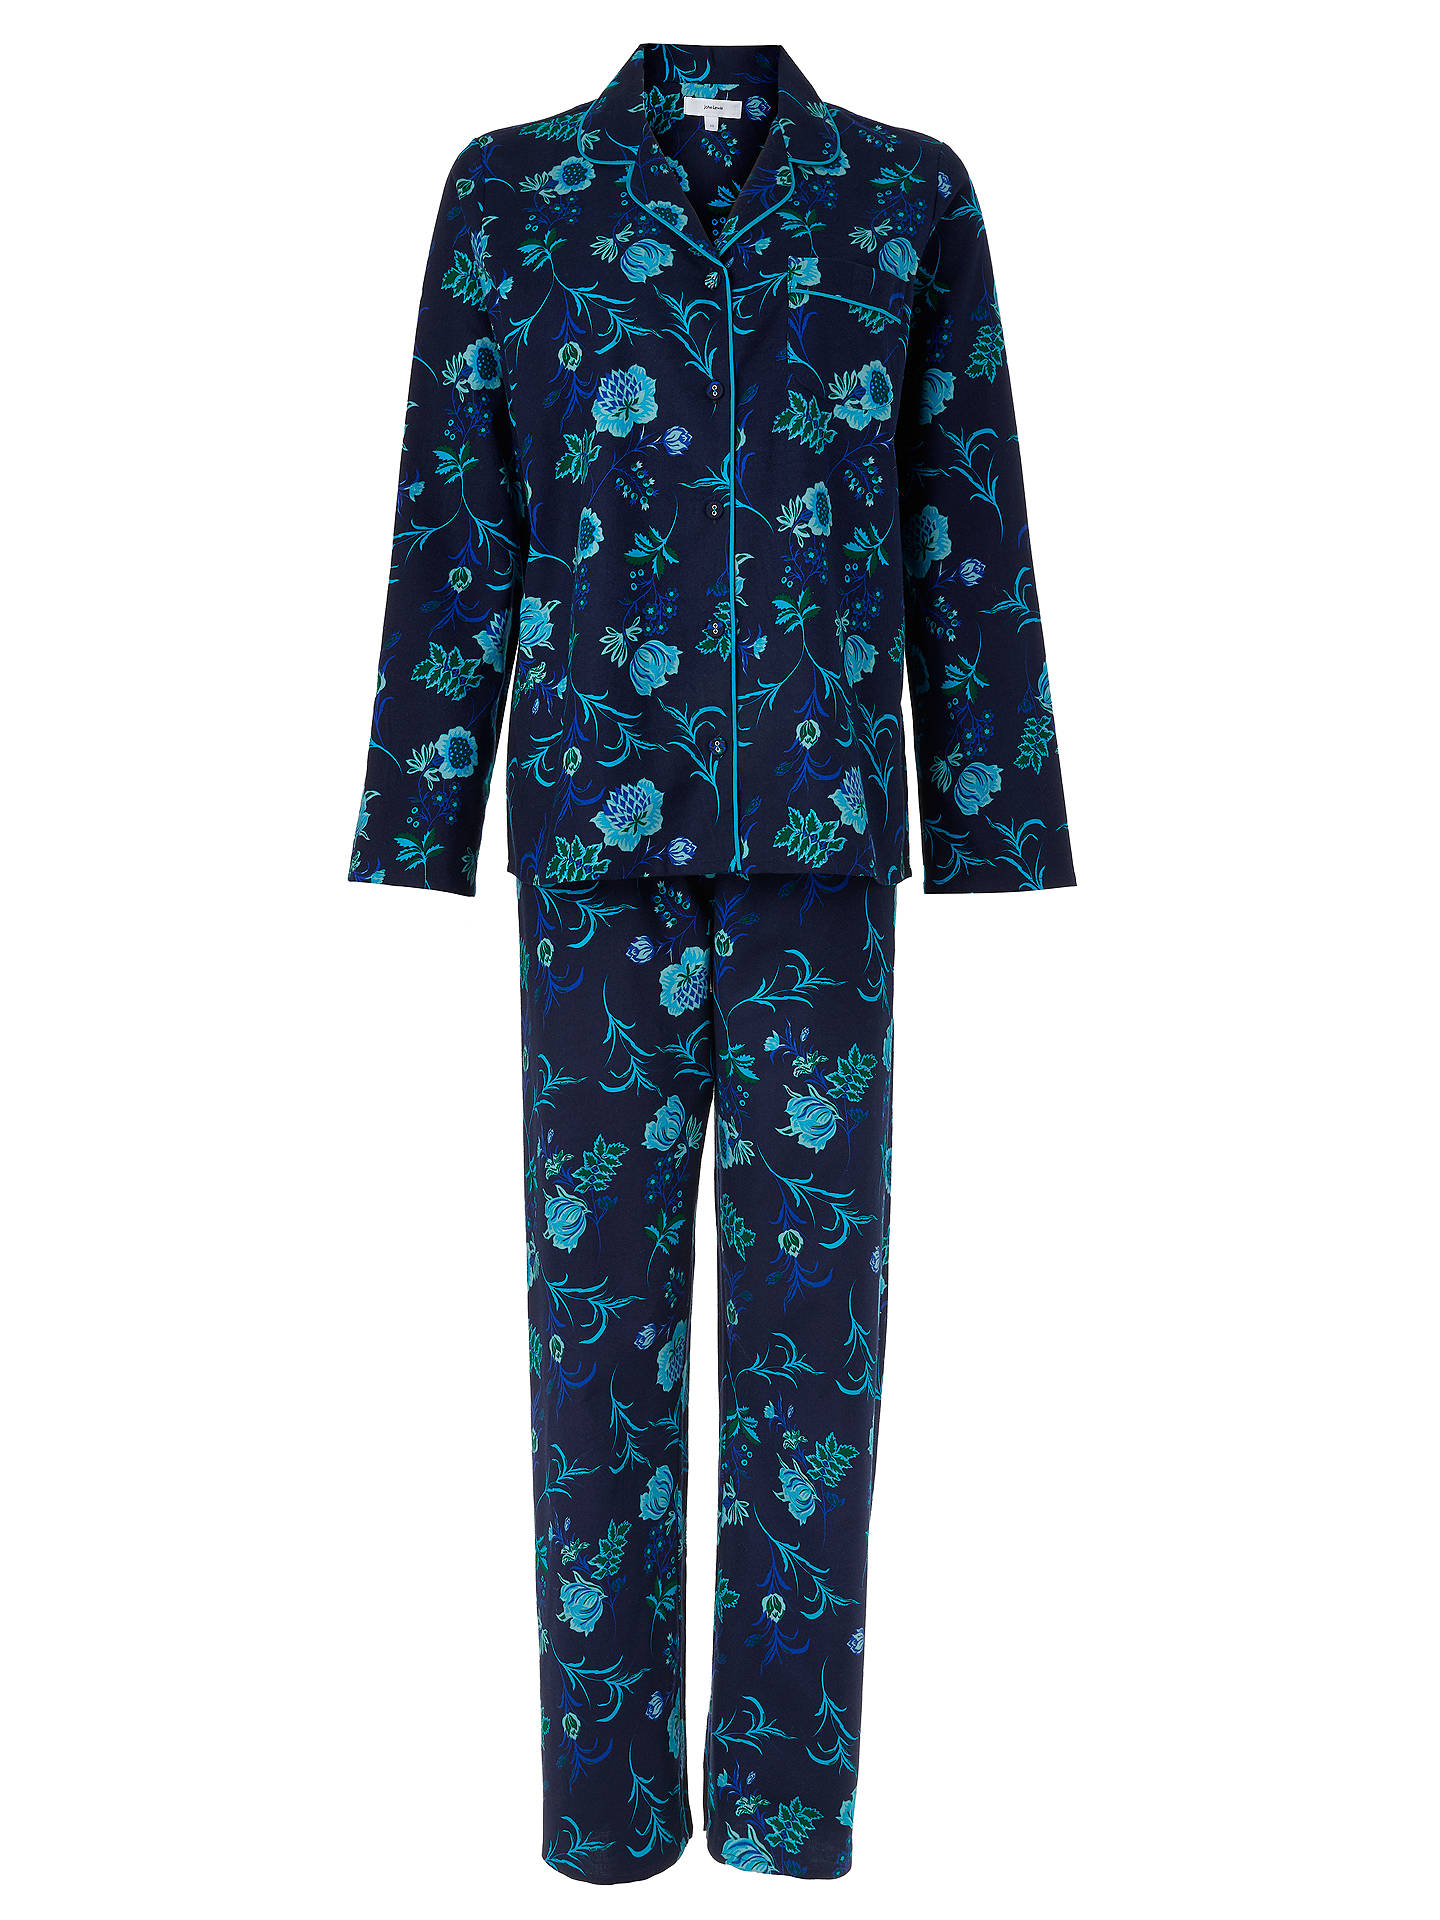 Buy John Lewis & Partners Chie Floral Print Cotton Pyjama Set, Navy/Turquoise, 8 Online at johnlewis.com